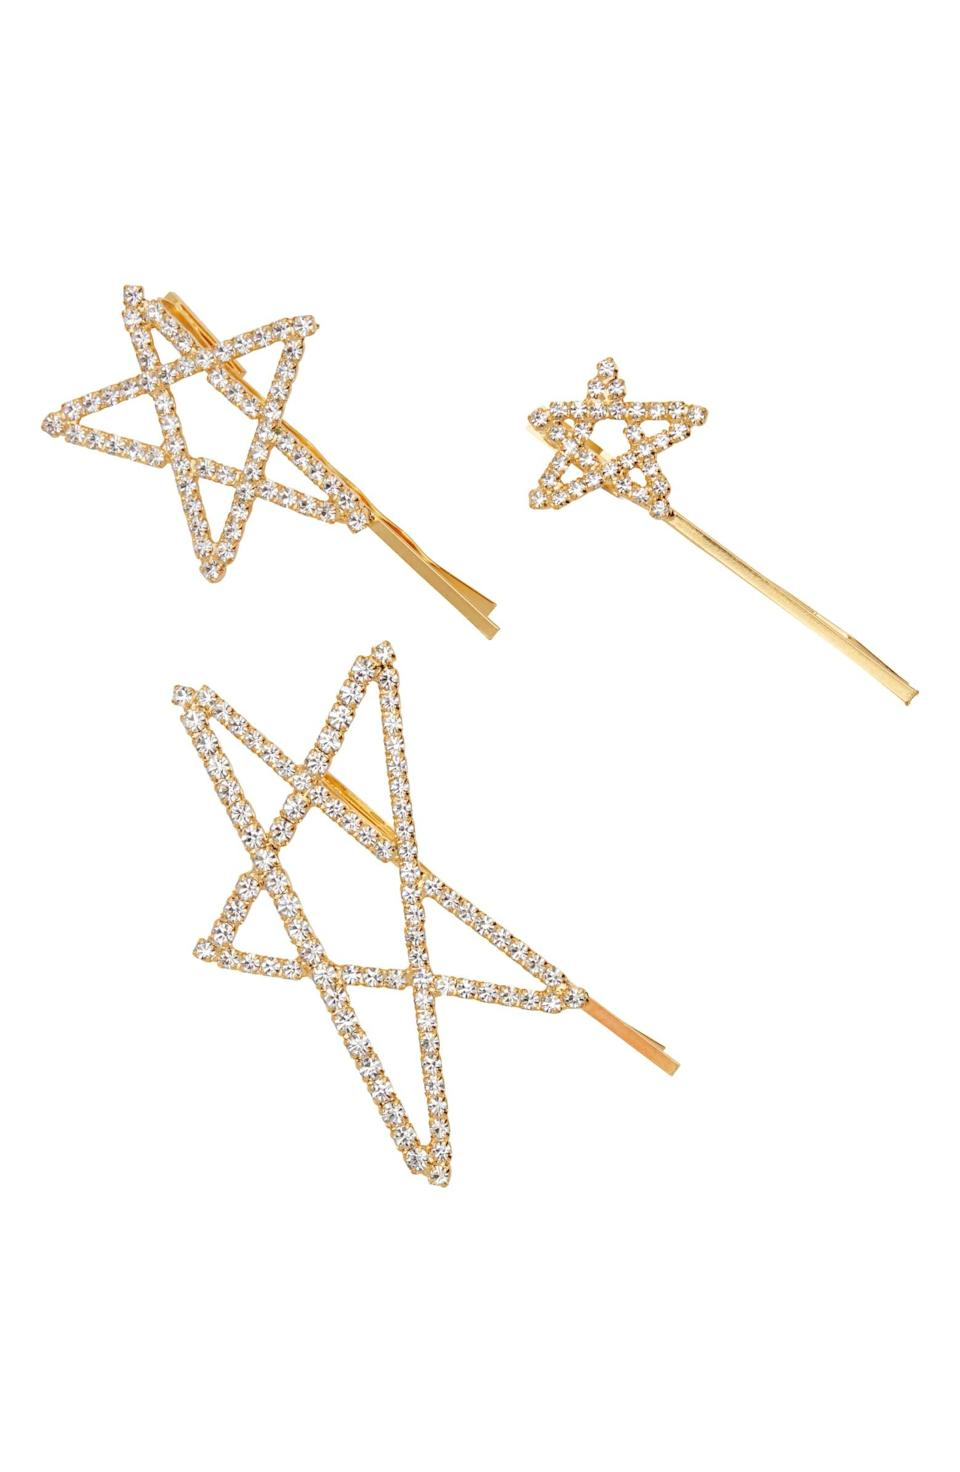 """<p>Embrace your inner star with these delicate bedazzled hair clips. Each rhinestone clip is a different size — perfect for mixing, matching, and stunting on the 'Gram. Wear one, two, or all three clips for a look you'll want to repeat all summer long.</p> <p><strong>$188</strong> <strong>for three clips</strong> (<a href=""""https://www.olivela.com/products/lelet-ny-seeing-stars-bobby-pin-set-432537?campaignId=10253643819&gclid=EAIaIQobChMIoKDGvJru6wIVjbbICh0fXgdKEAQYAyABEgIL1fD_BwE"""" rel=""""nofollow noopener"""" target=""""_blank"""" data-ylk=""""slk:Shop Now"""" class=""""link rapid-noclick-resp"""">Shop Now</a>)</p>"""